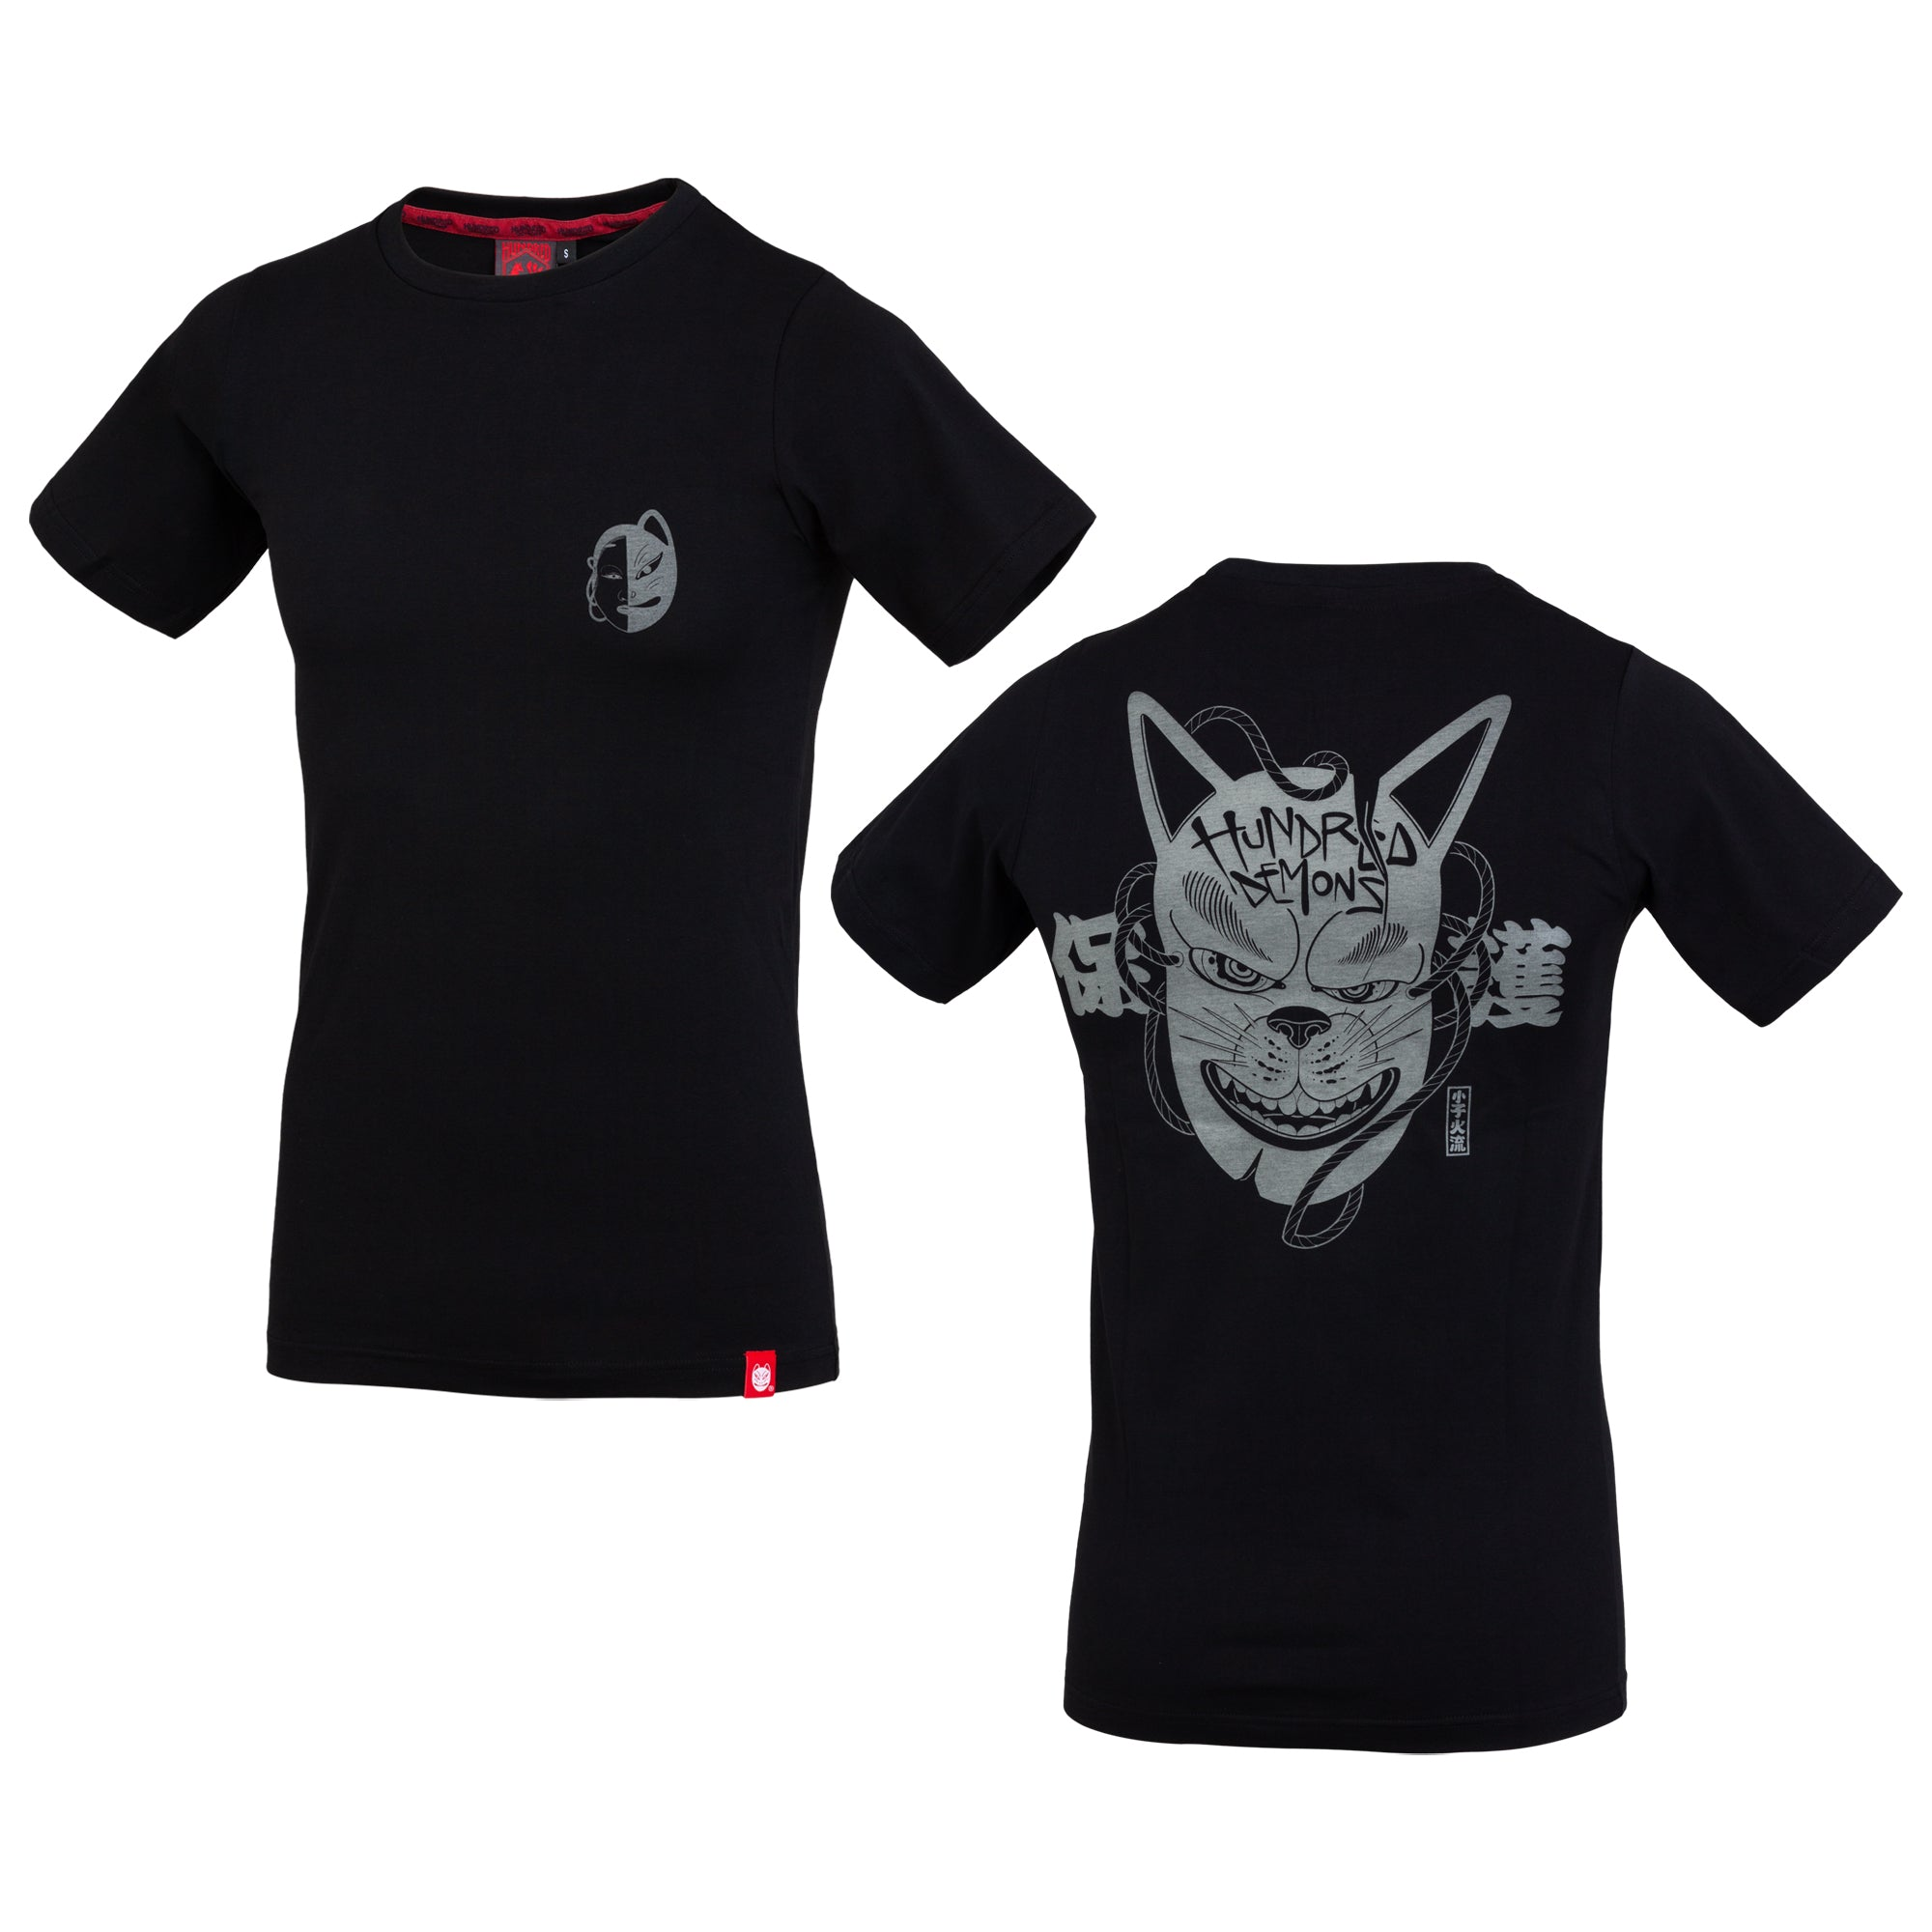 T-shirt Oscar Hove Hundred demons